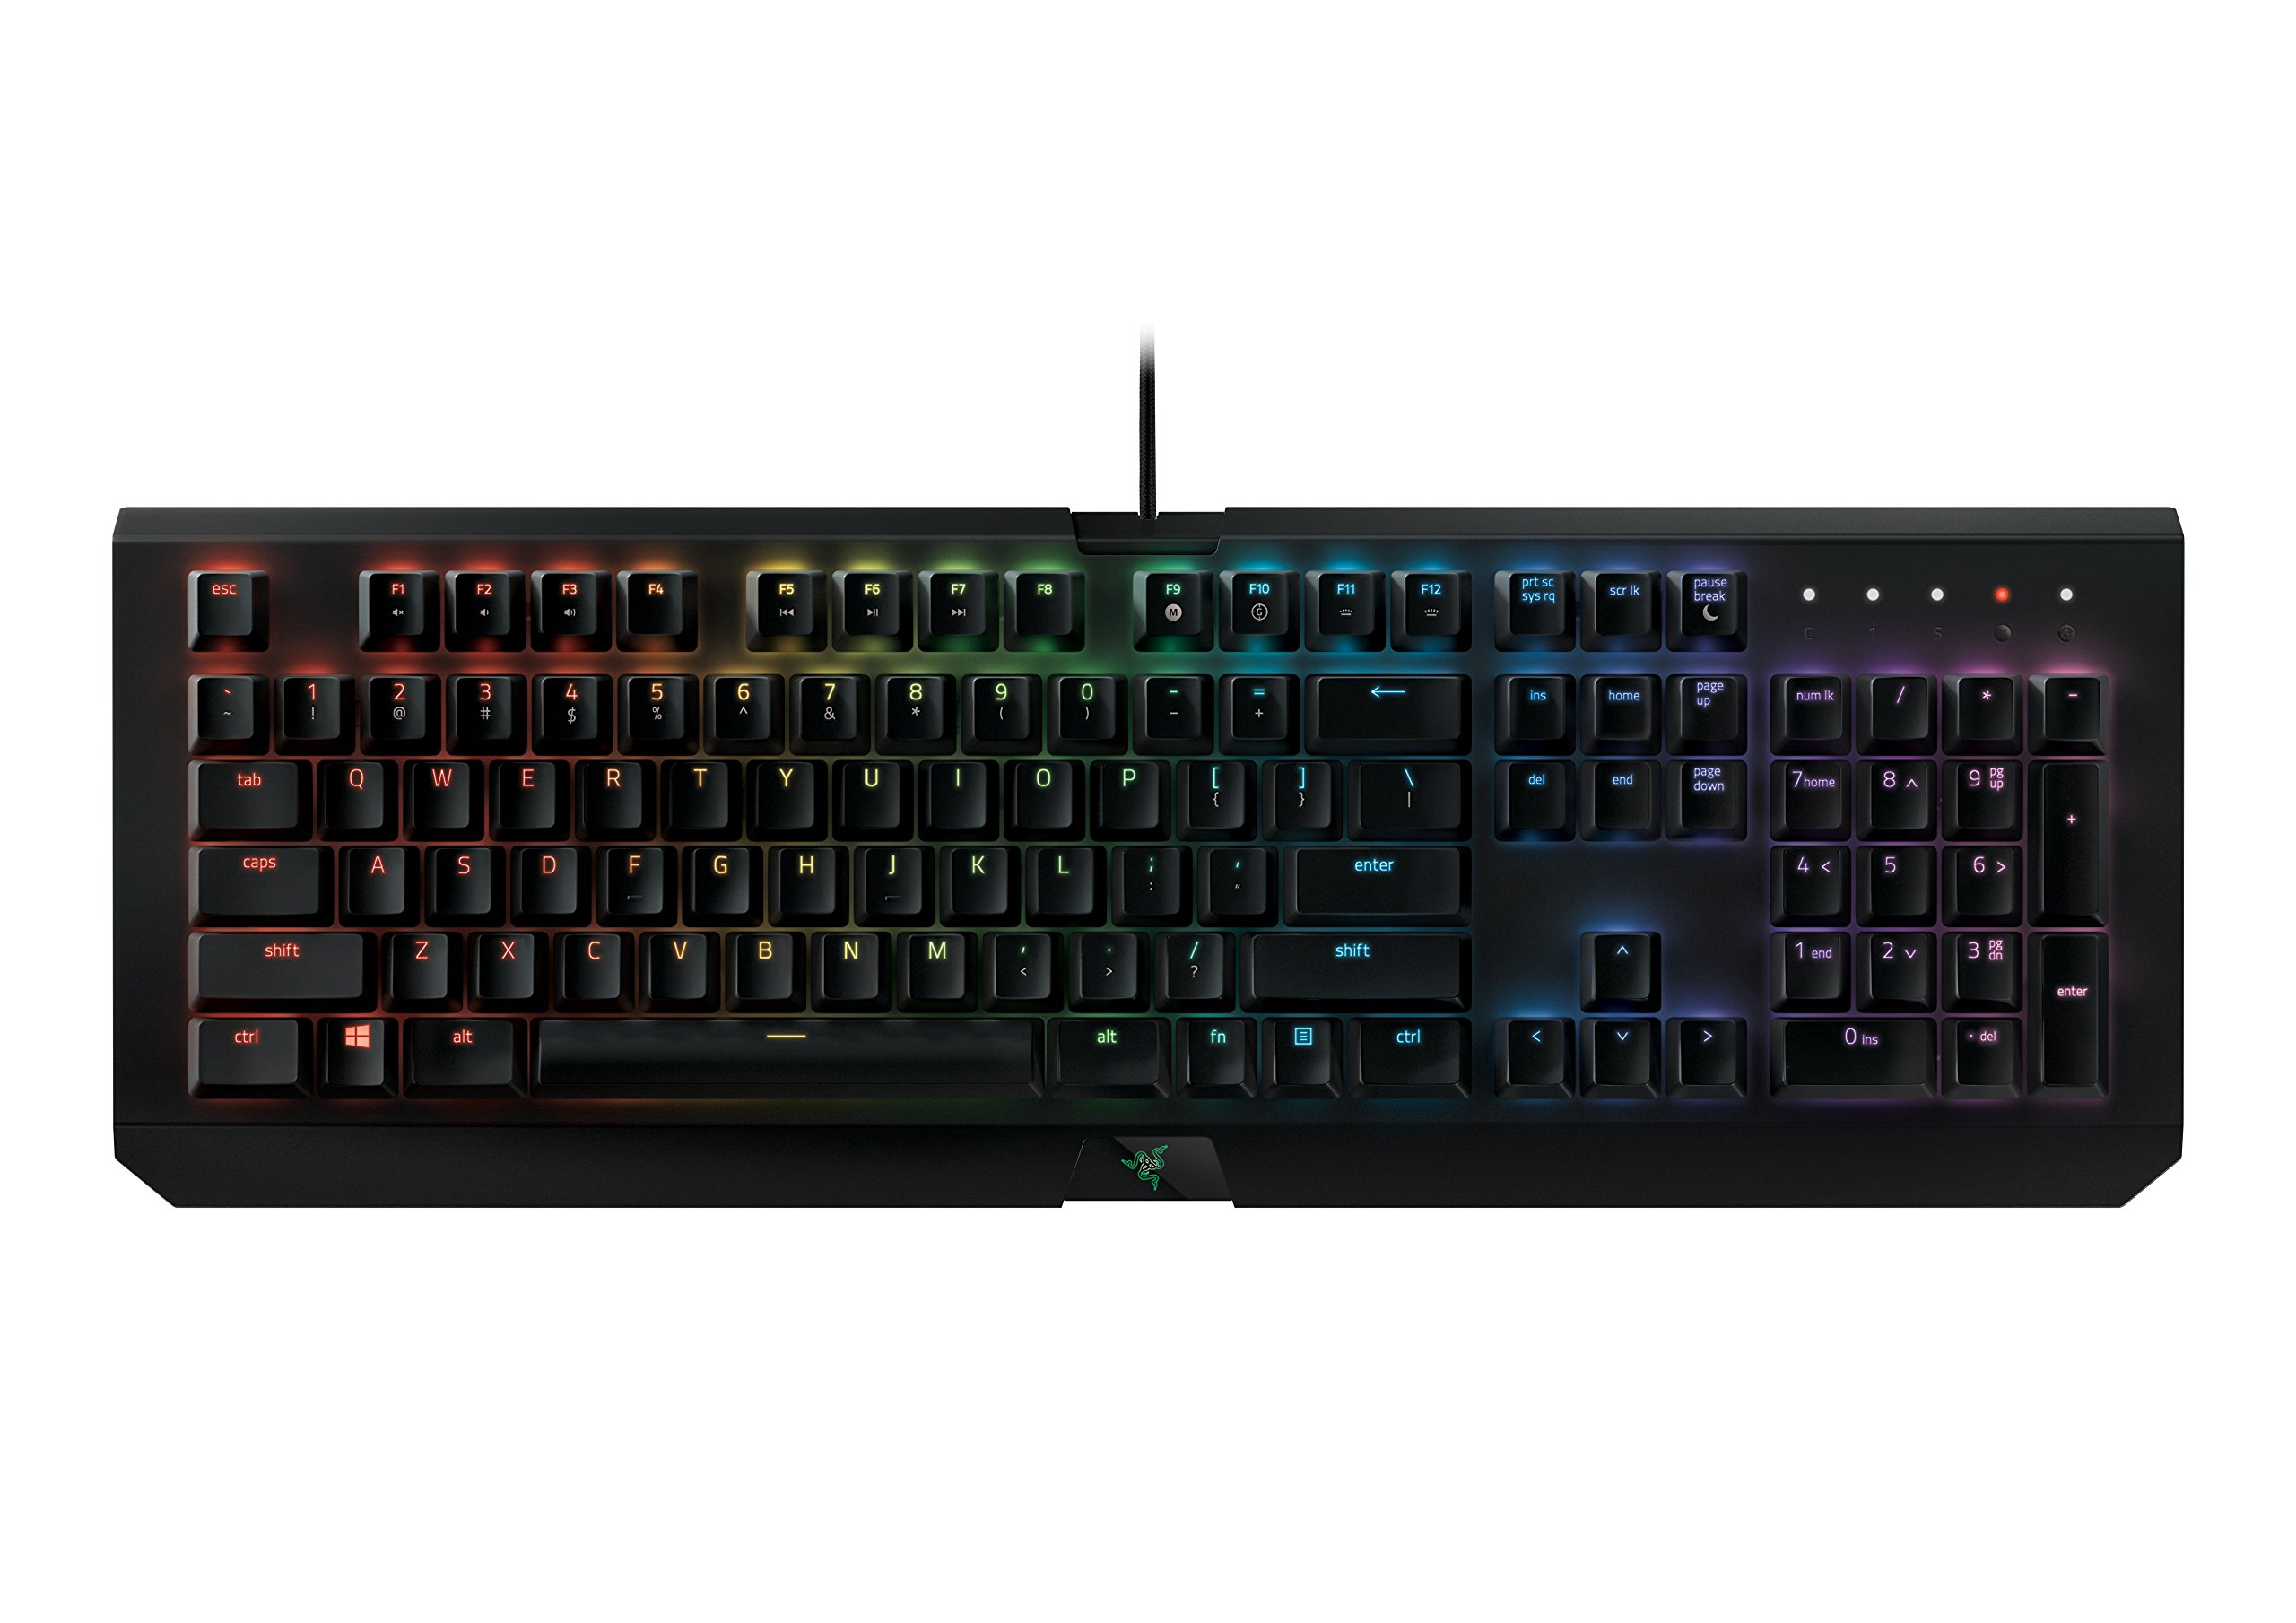 Razer BlackWidow X Chroma: Esports Gaming Keyboard - Military Grade Metal Construction - Durable up to 80 Million Keystrokes - Powered by Razer Chroma - Razer Green Mechanical Switches (Tactile and Clicky)